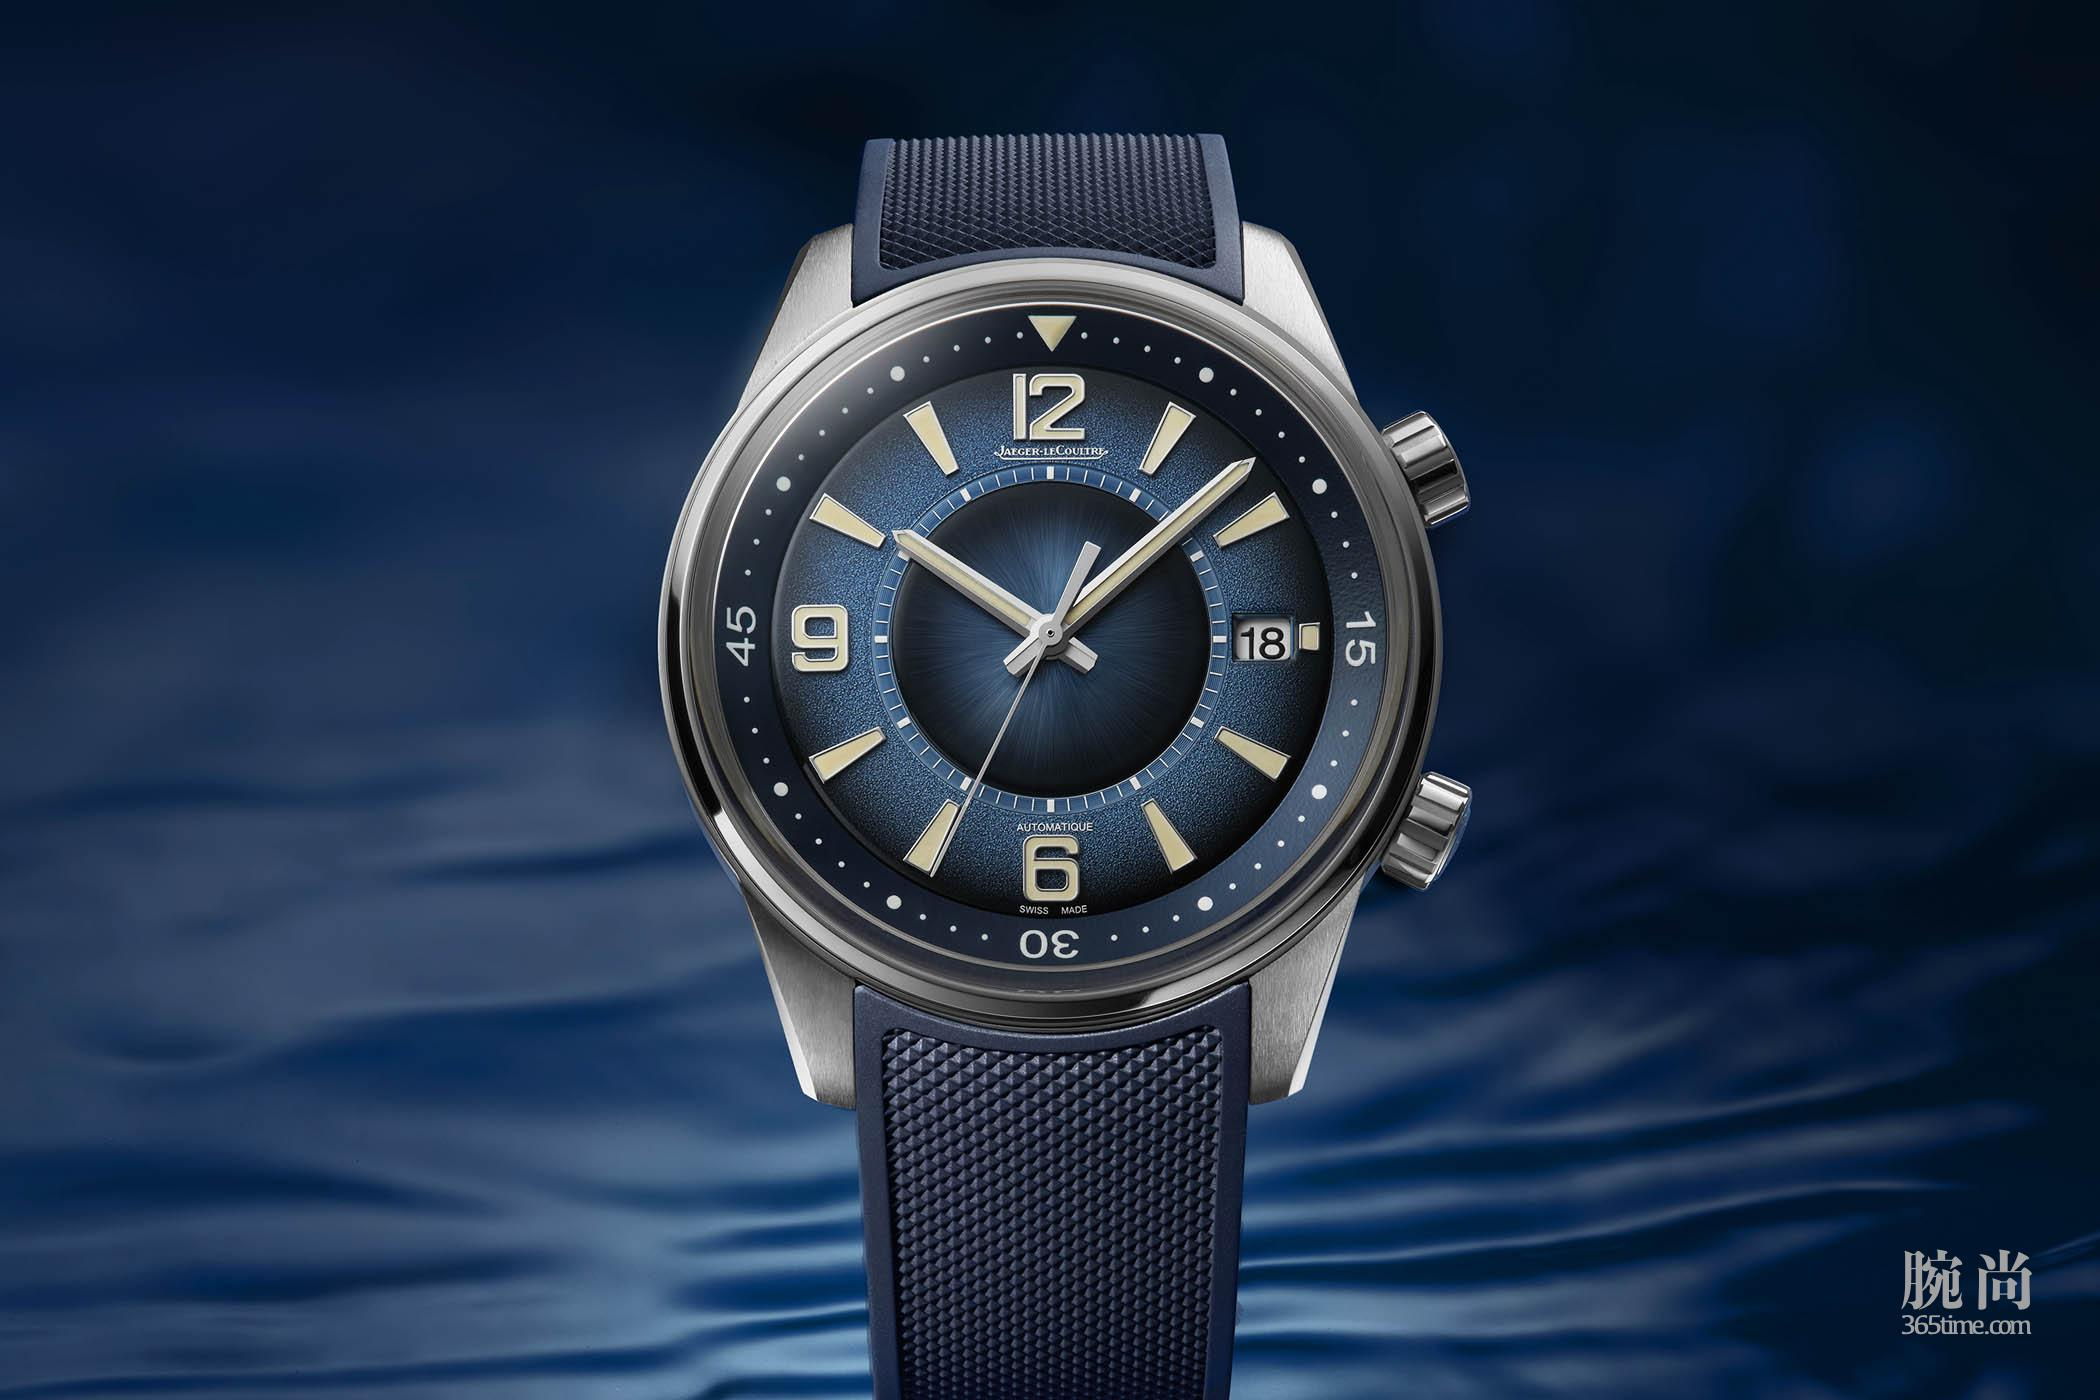 Jaeger-LeCoultre-Polaris-Date-Limited-Edition-Gradient-Blue-Q9068681-4.jpg